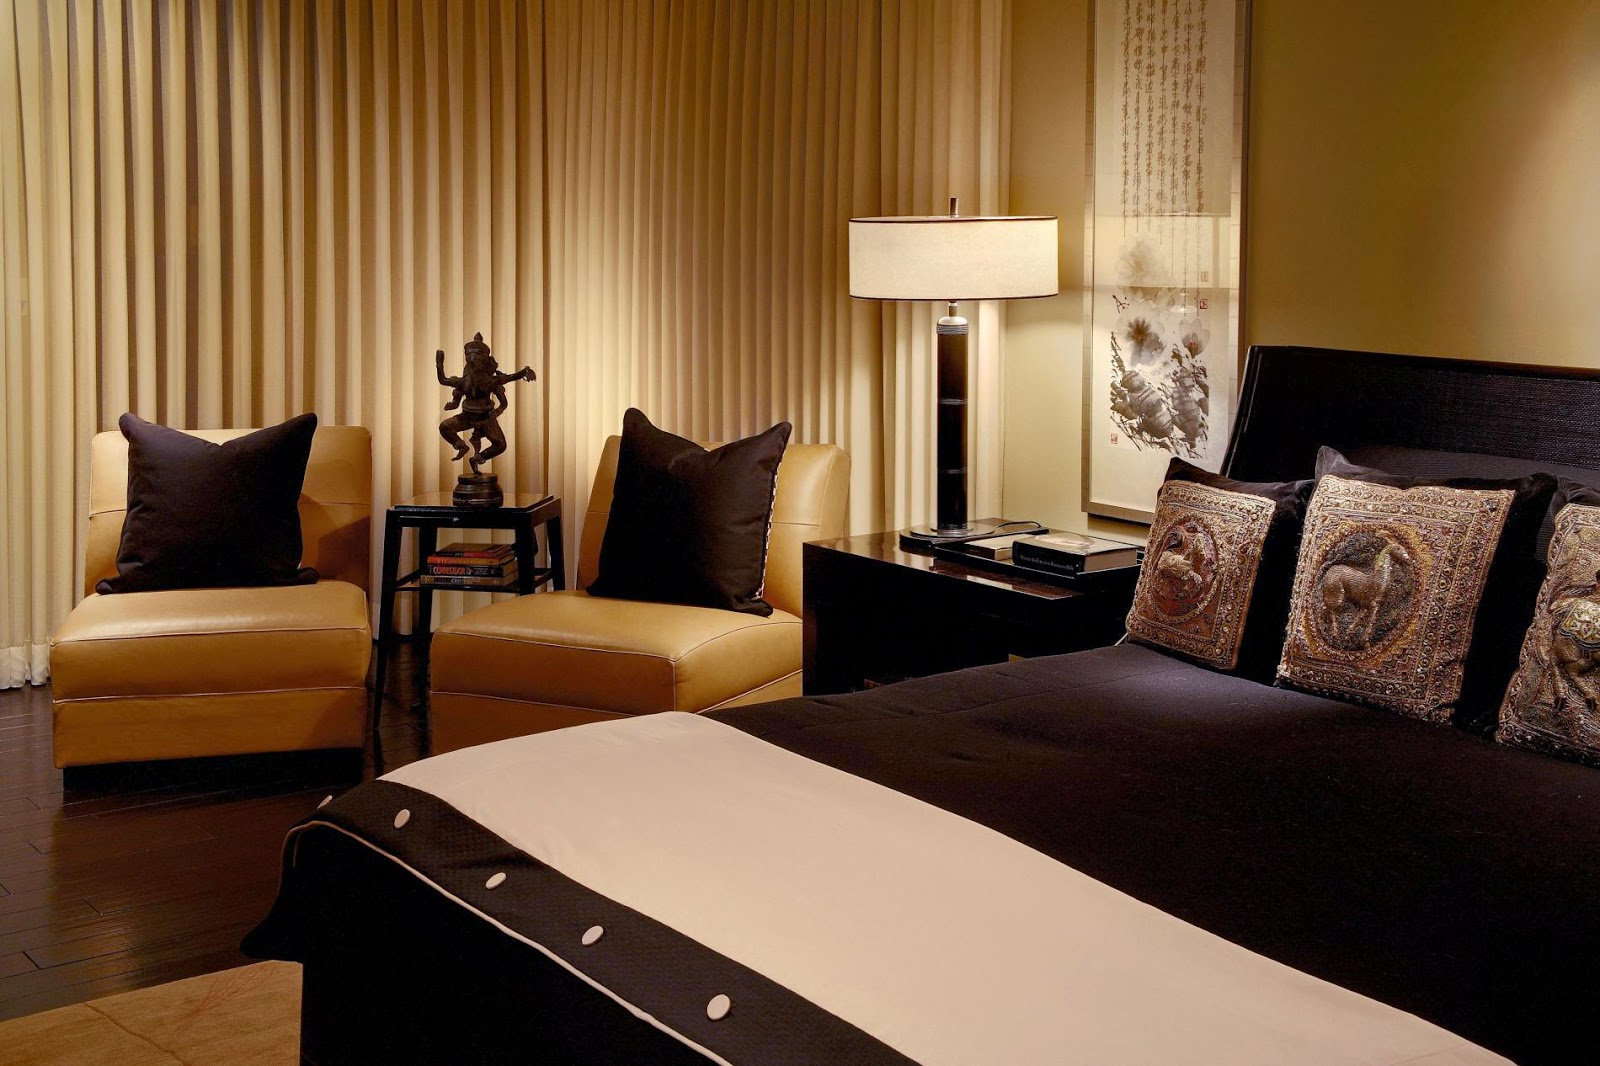 brown and black bedroom furniture | architecture and furniture